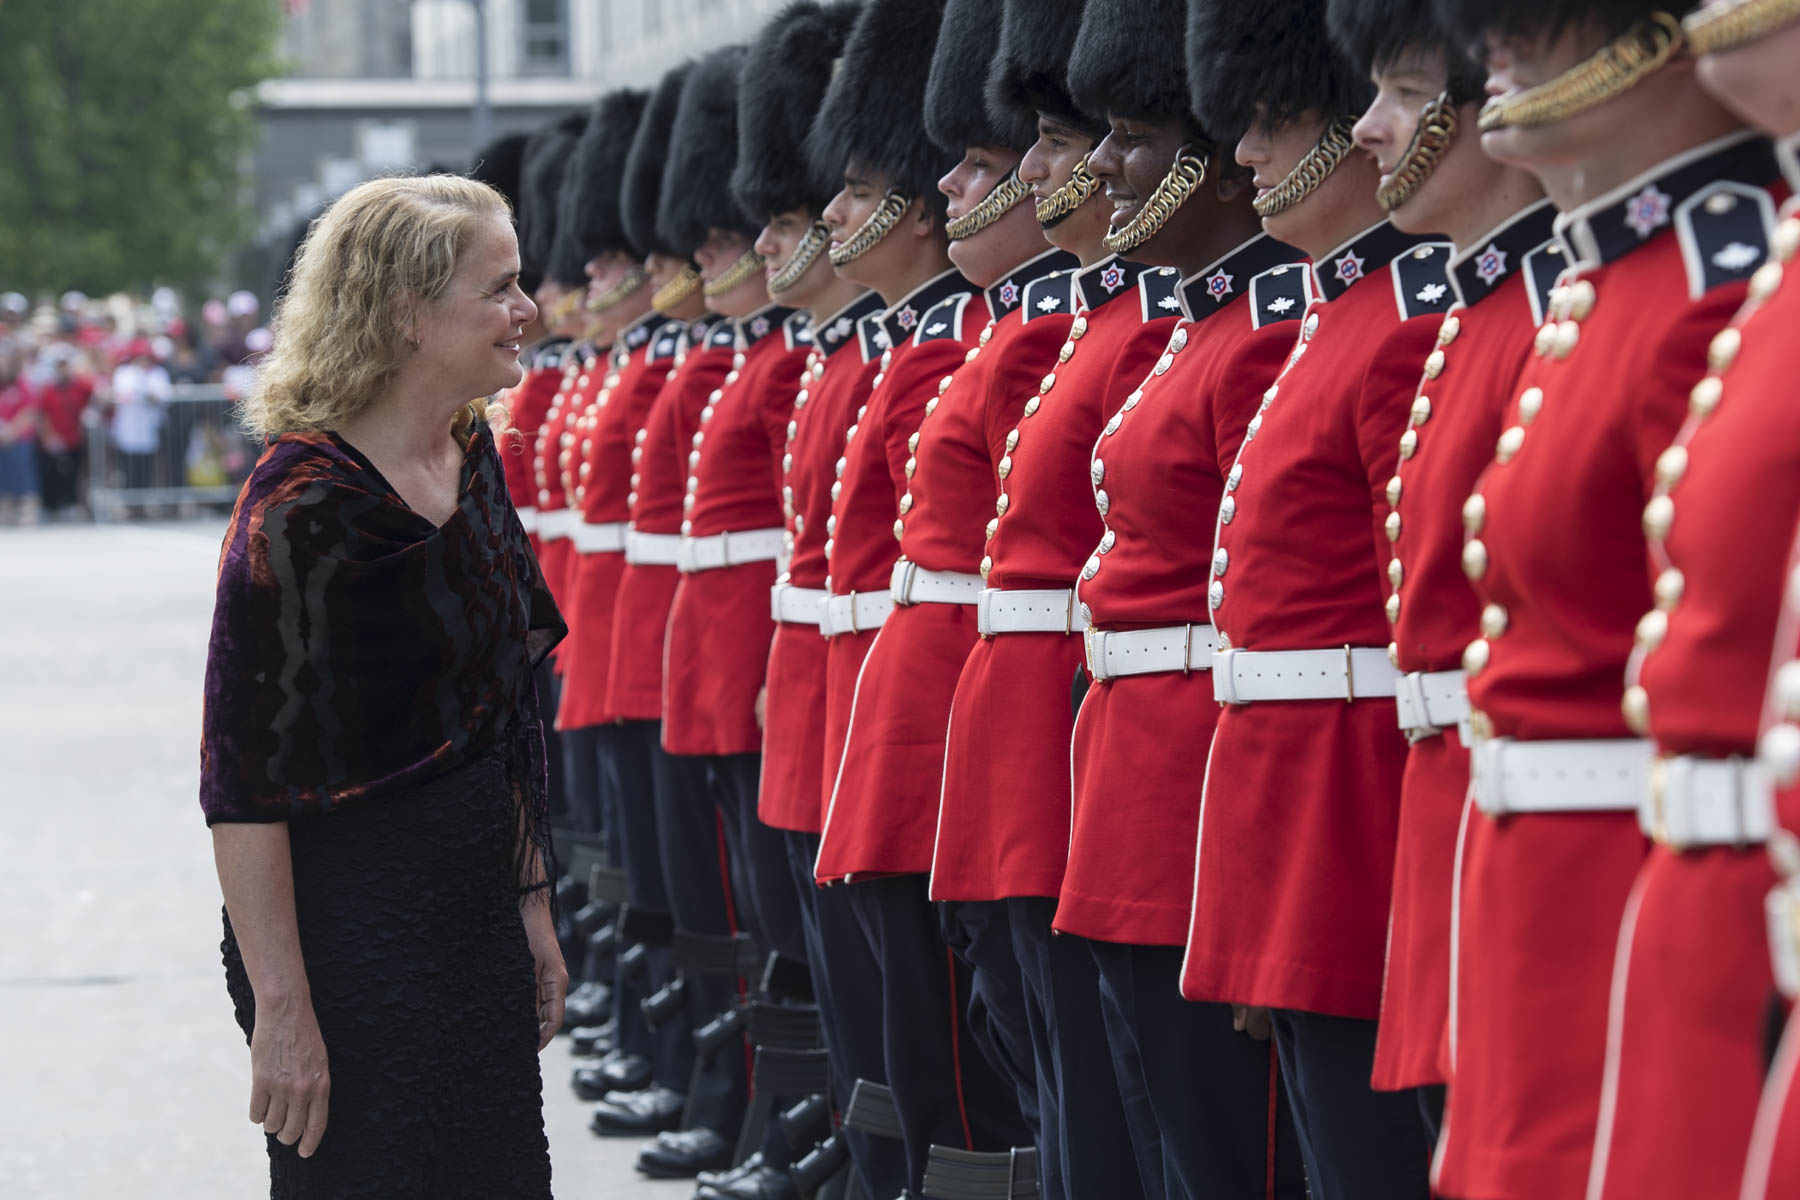 Her Excellency celebrated Canada Day at the Noon Show on Parliament Hill, in Ottawa. Before heading to the Hill, the Governor General, as Commander-in-Chief, inspected a guard of honour at the Peacekeeping Monument.